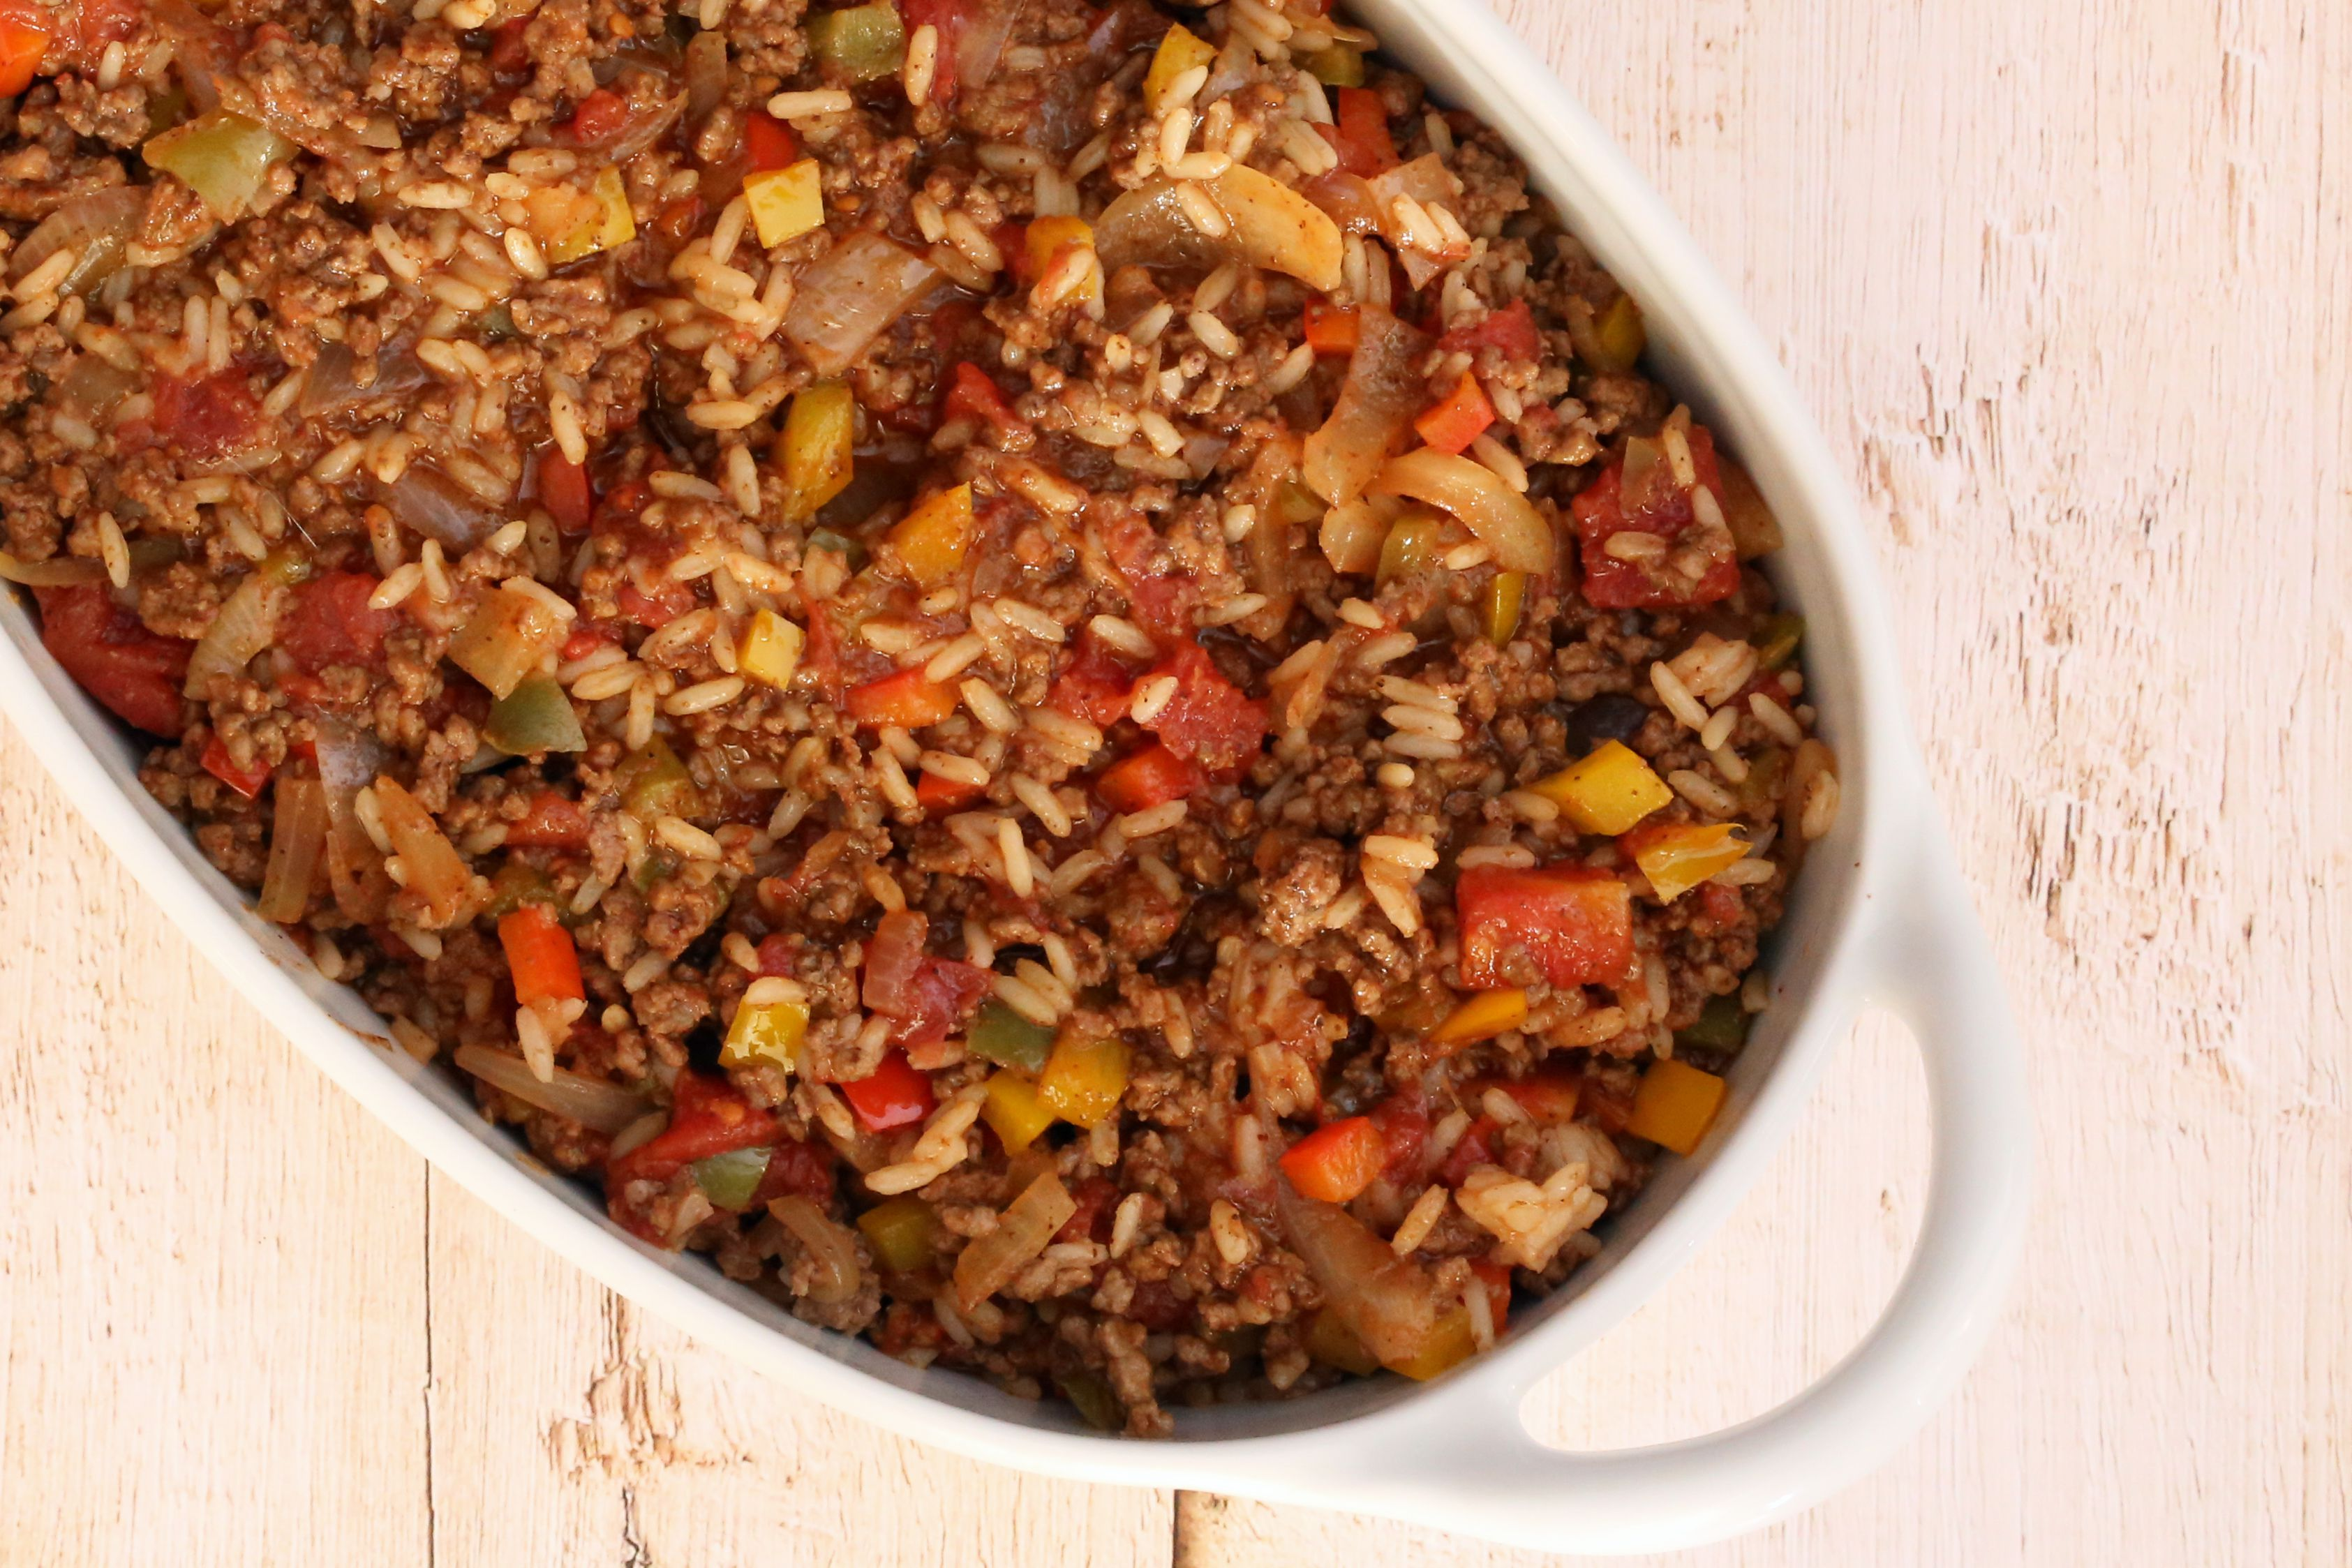 Ground beef and rice in baking dish.